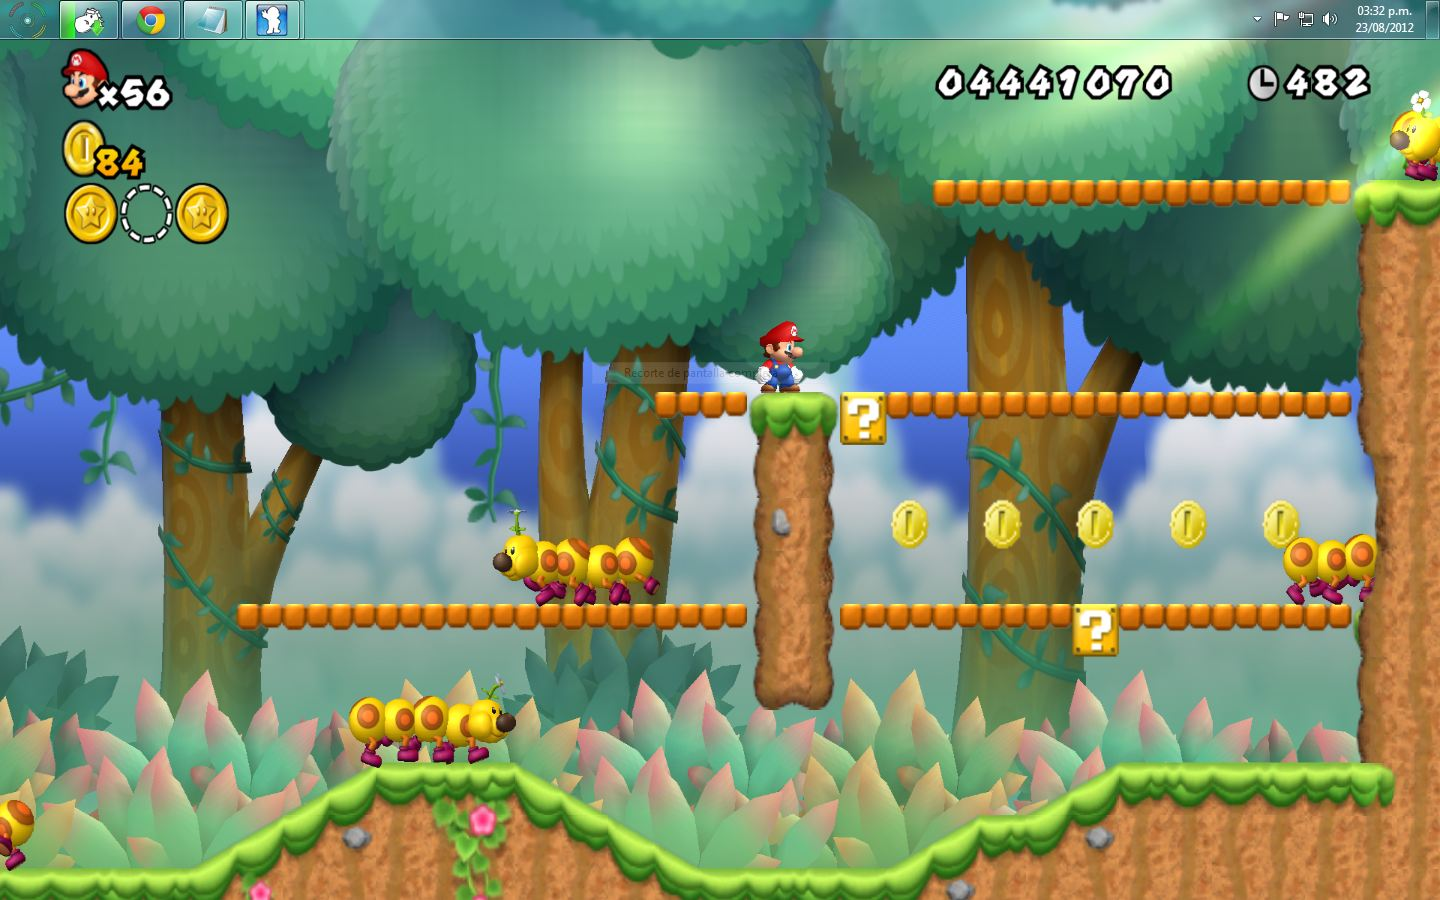 Bross'net New Super Mario Bross De Wii Jugalo En Pc Capturas